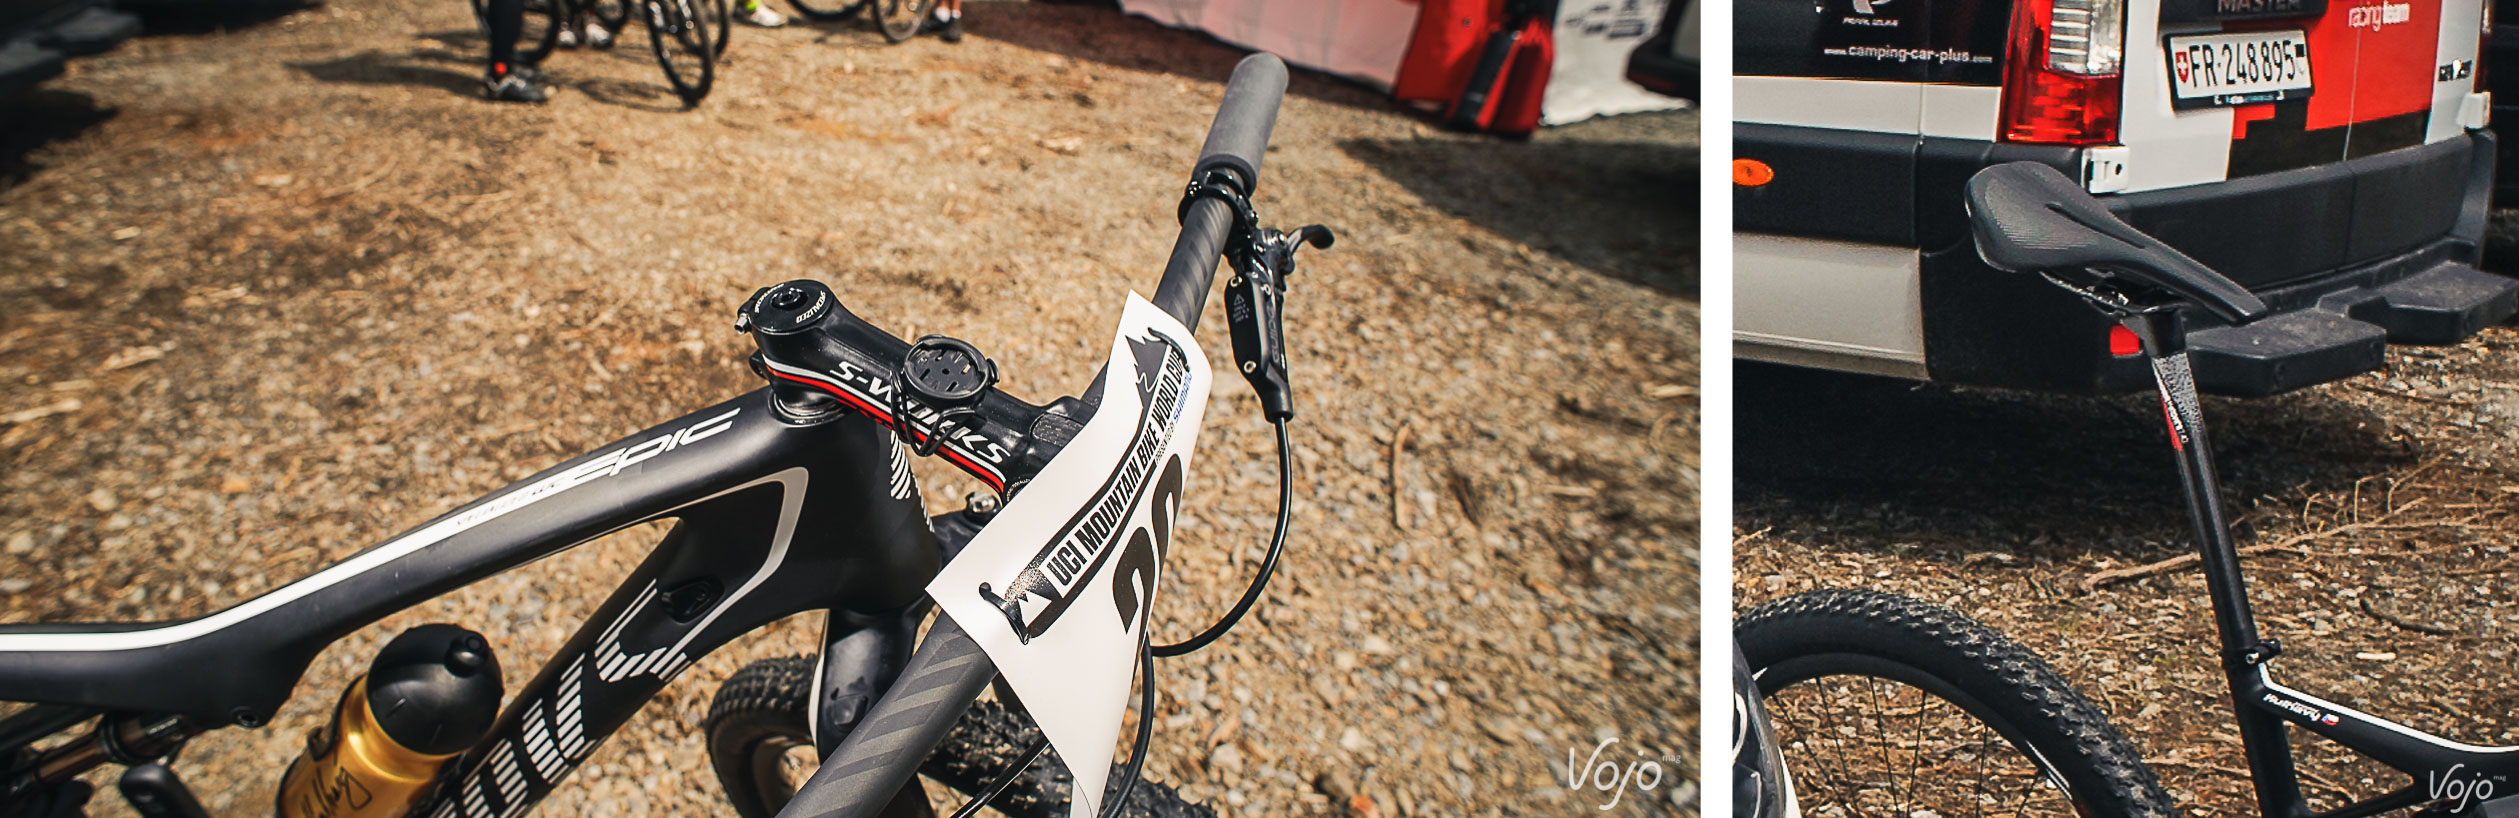 3-World_Cup_MTB_Pro_Bike_Check_Specialized_Epic_Jaroslav_Kulhavy_Copyright_OBeart_VojoMag-1